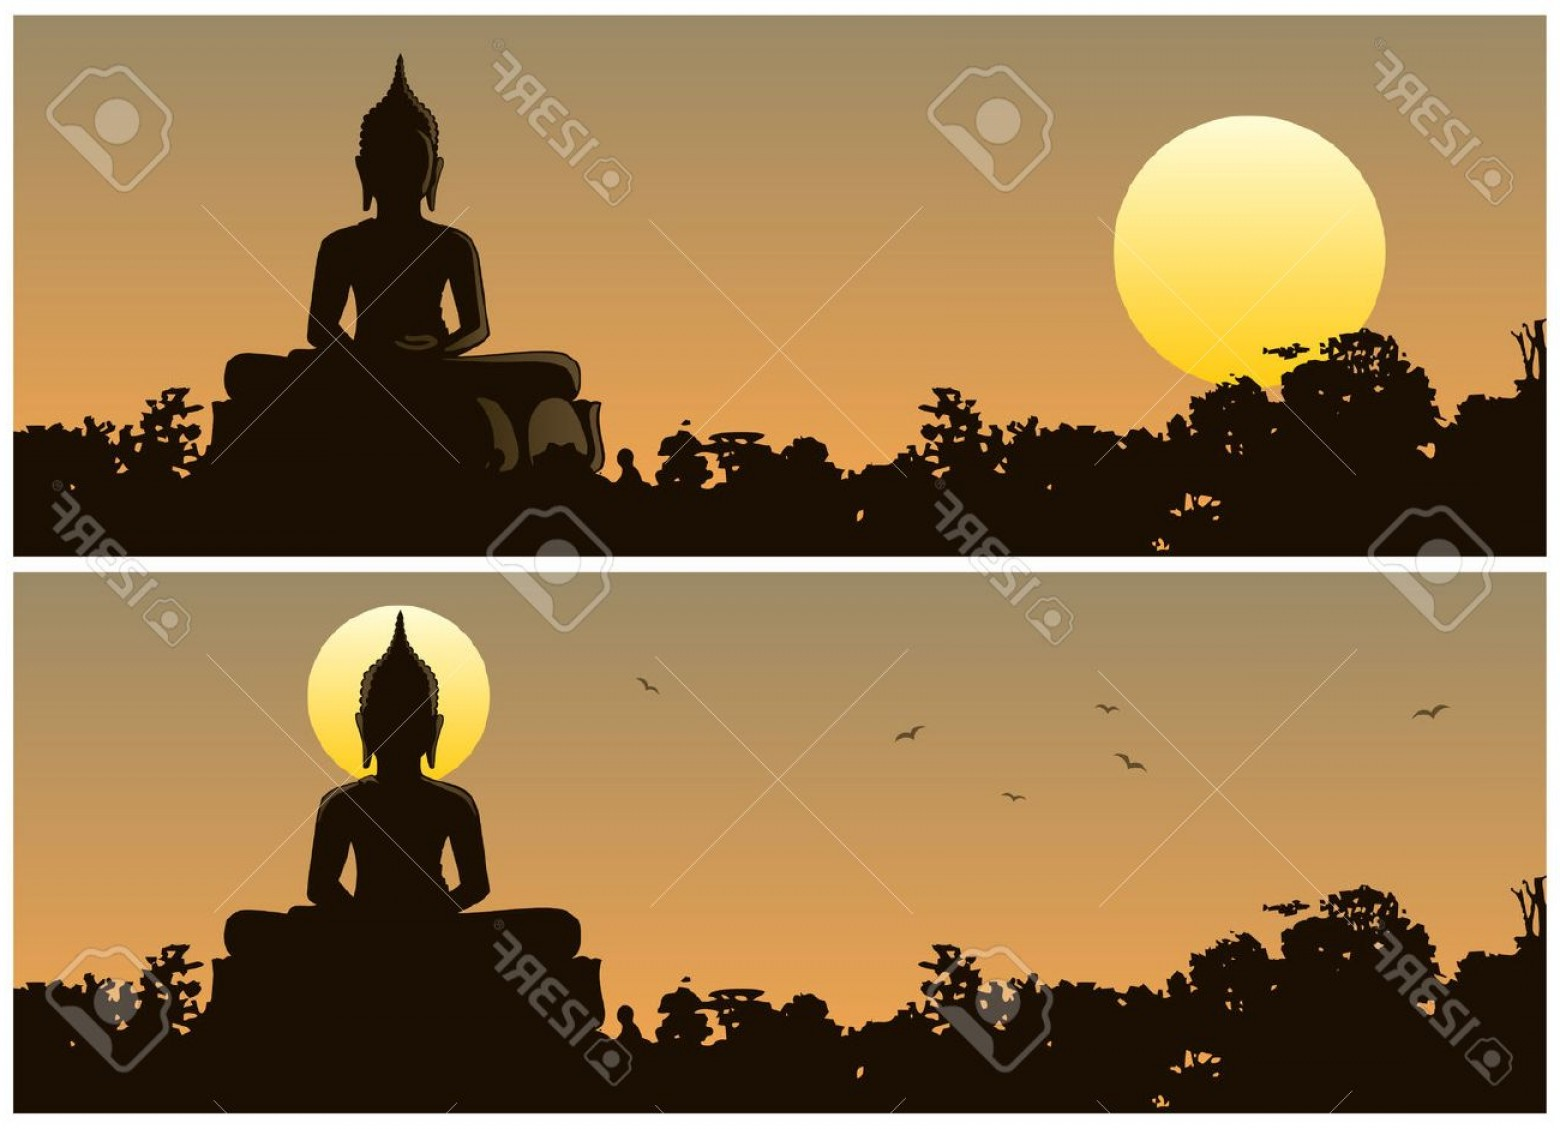 Ancient Jungle Statue Vector Images: Photostock Vector Buddha Statue In The Jungle At Sunset Different Versions No Transparency Used Basic Linear Gradien